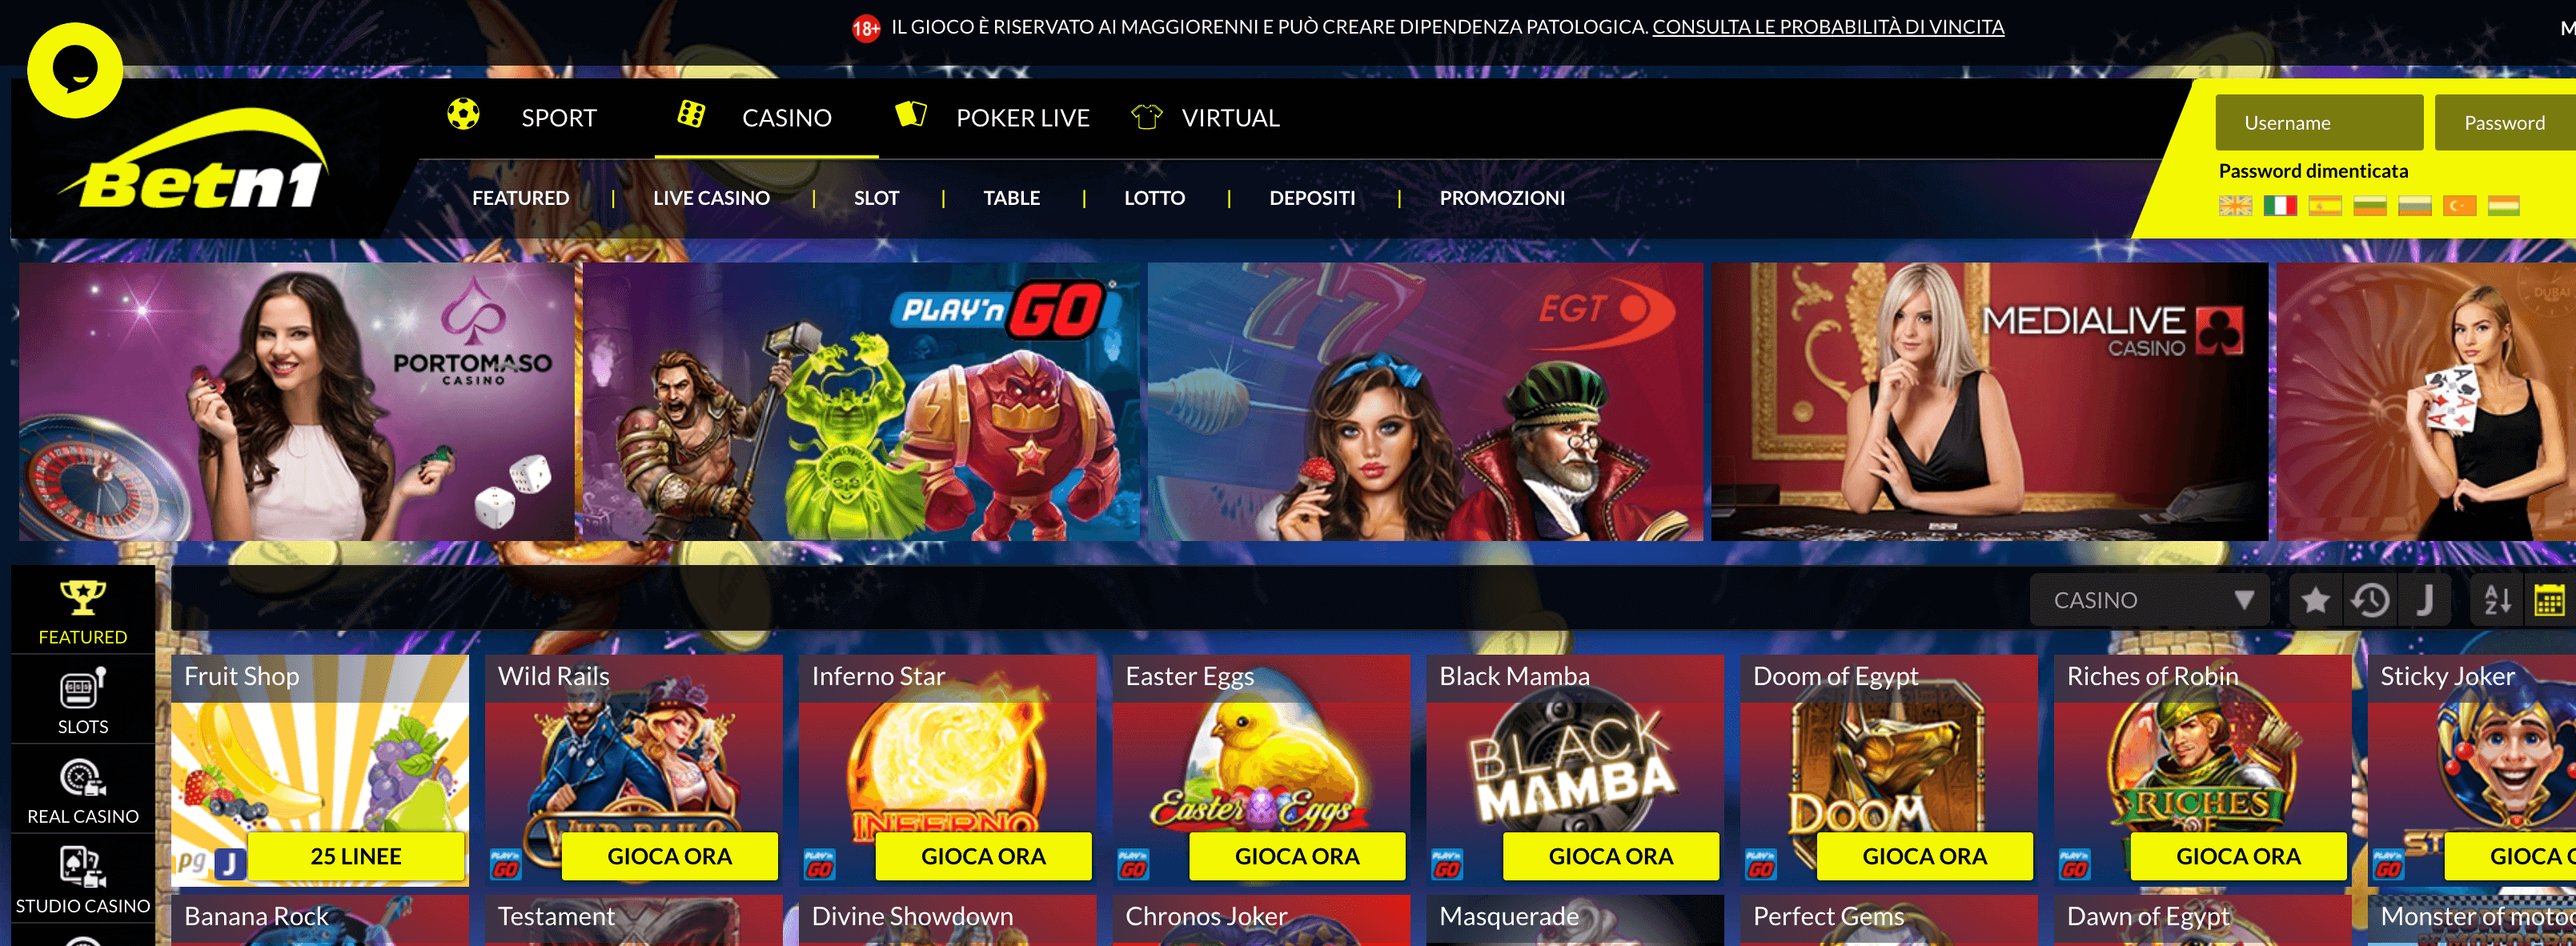 Betn1 Casino Screenshot